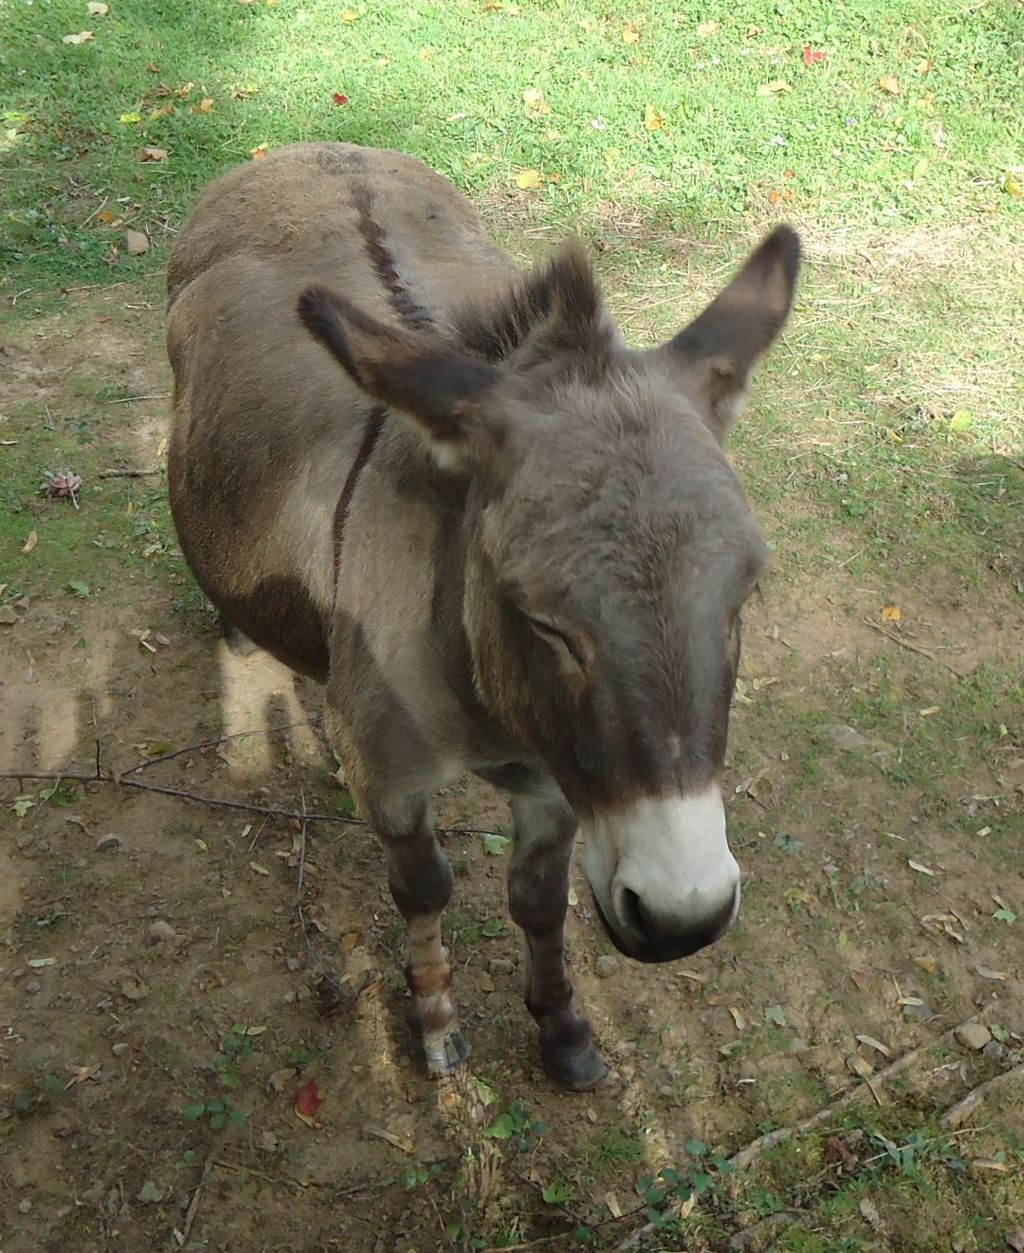 Donkey on farm in New Jersey